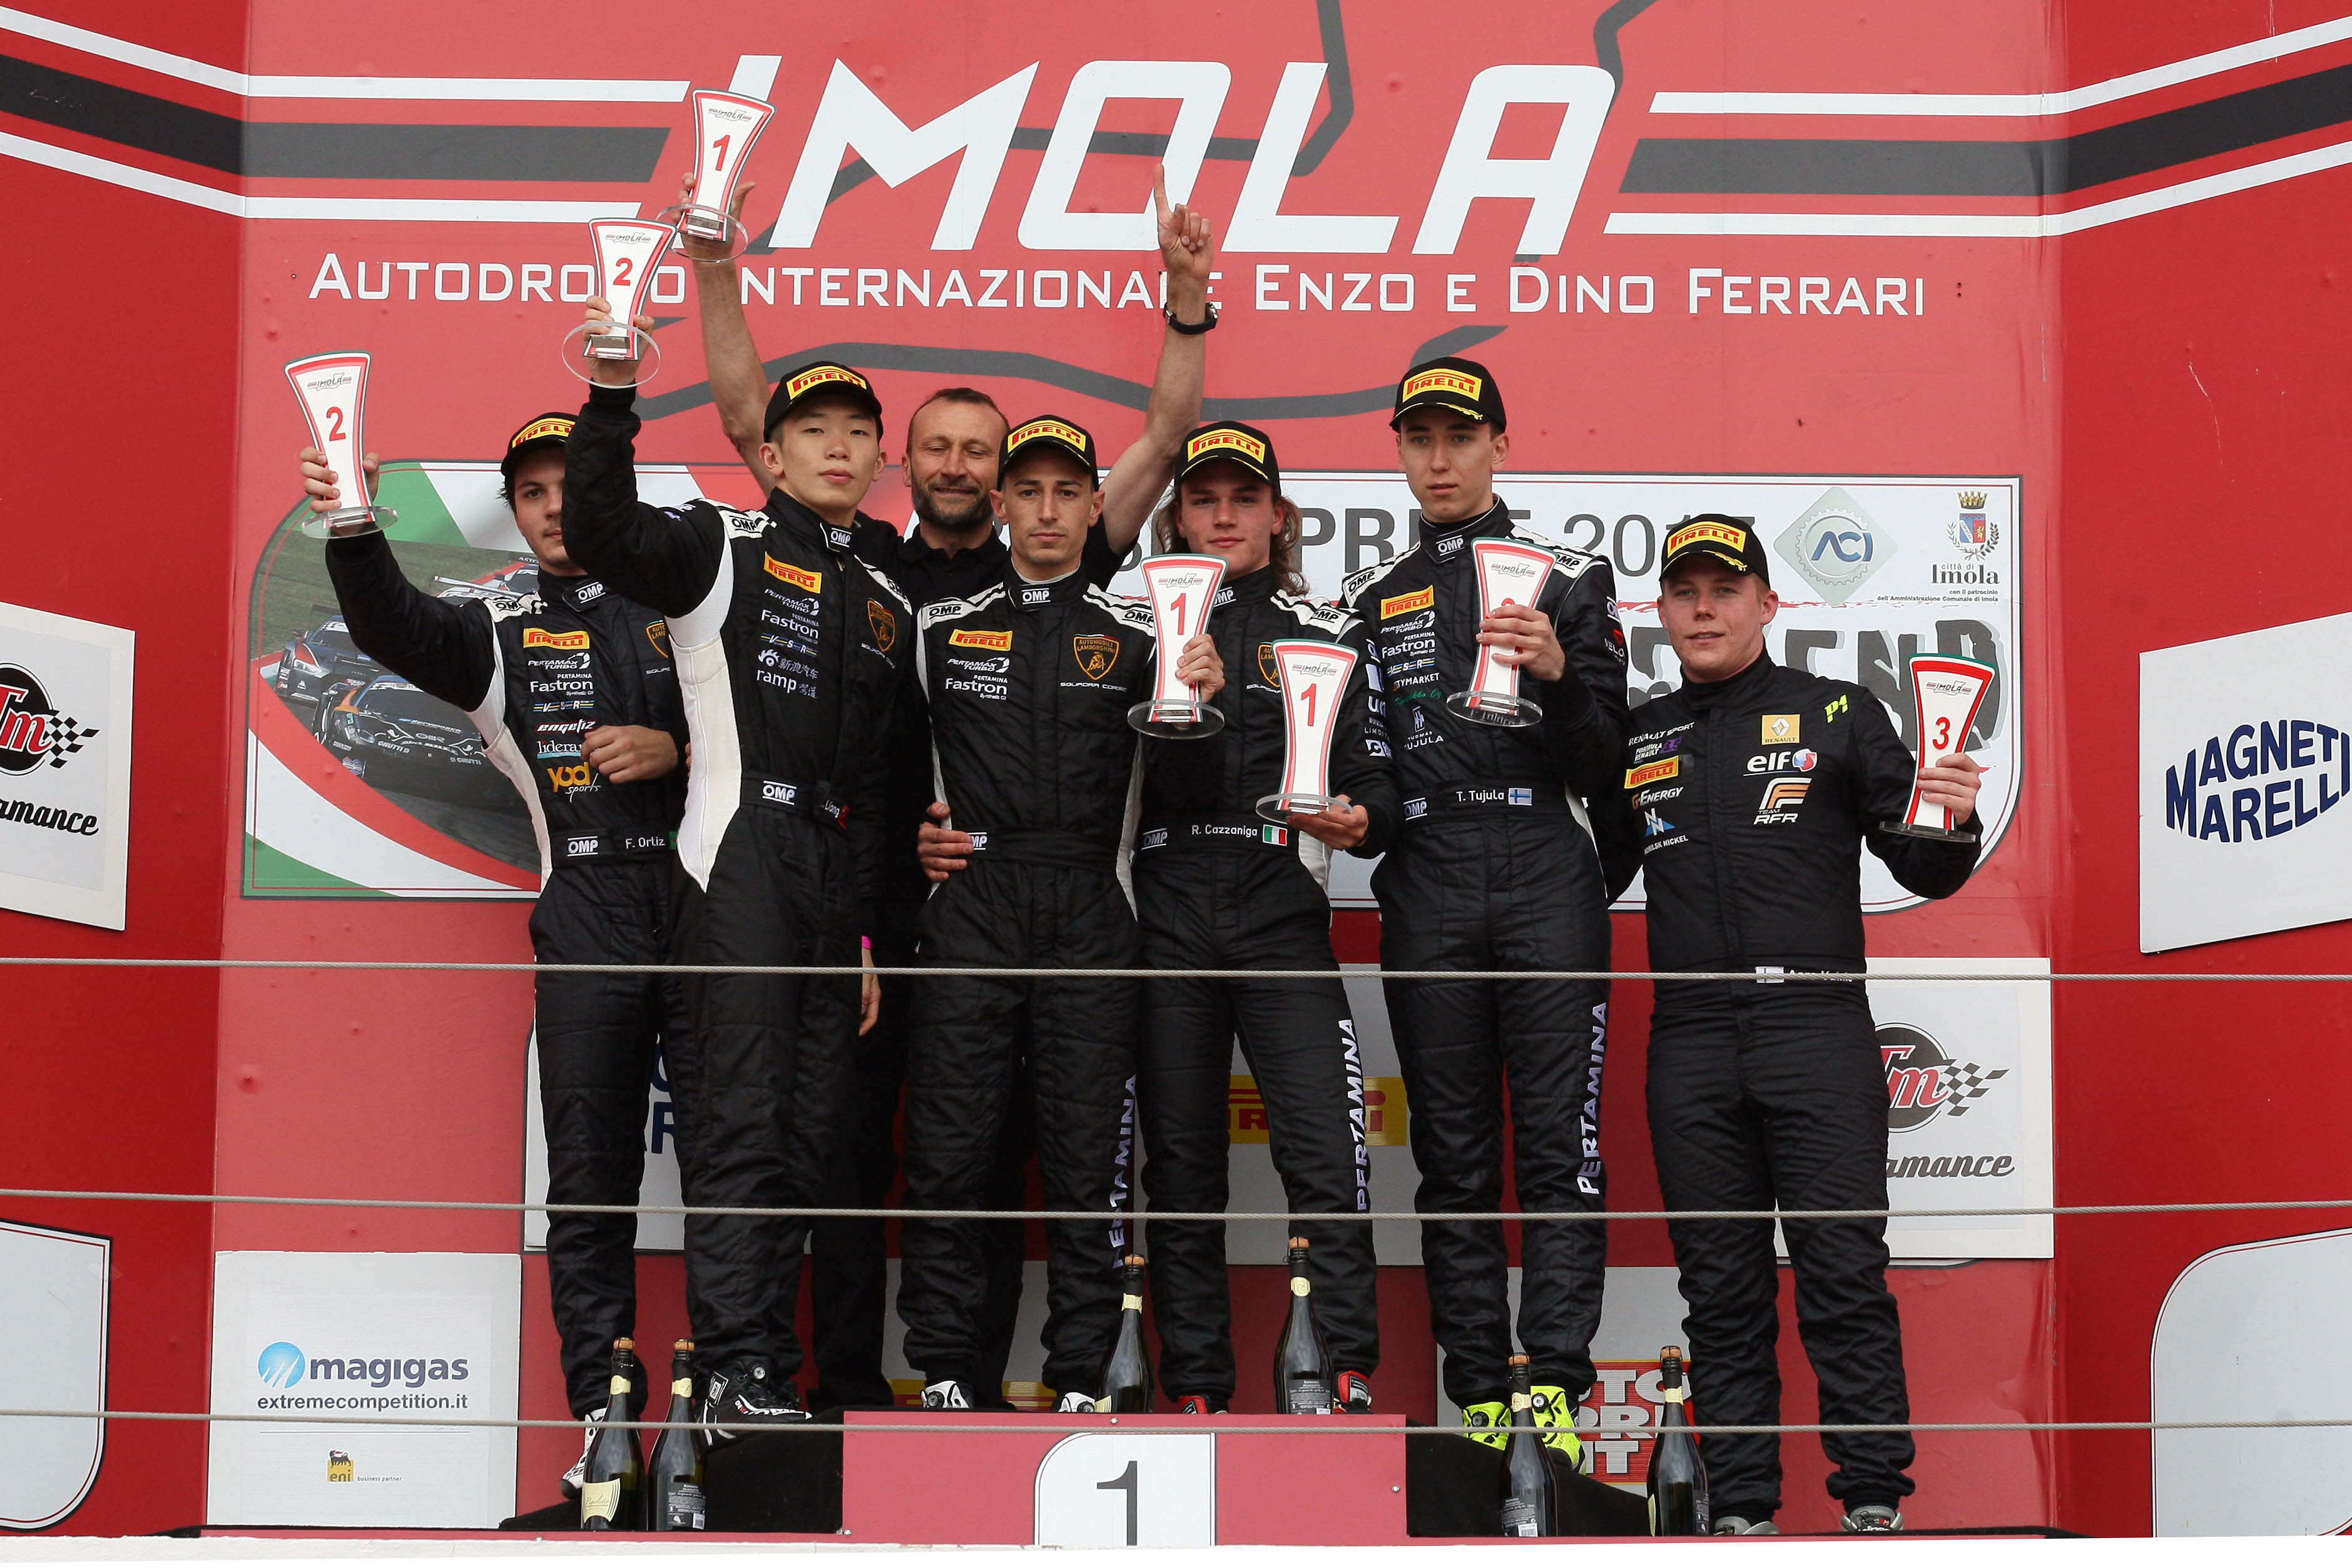 DOMINANT PERFORMANCE FROM VSR AT IMOLA